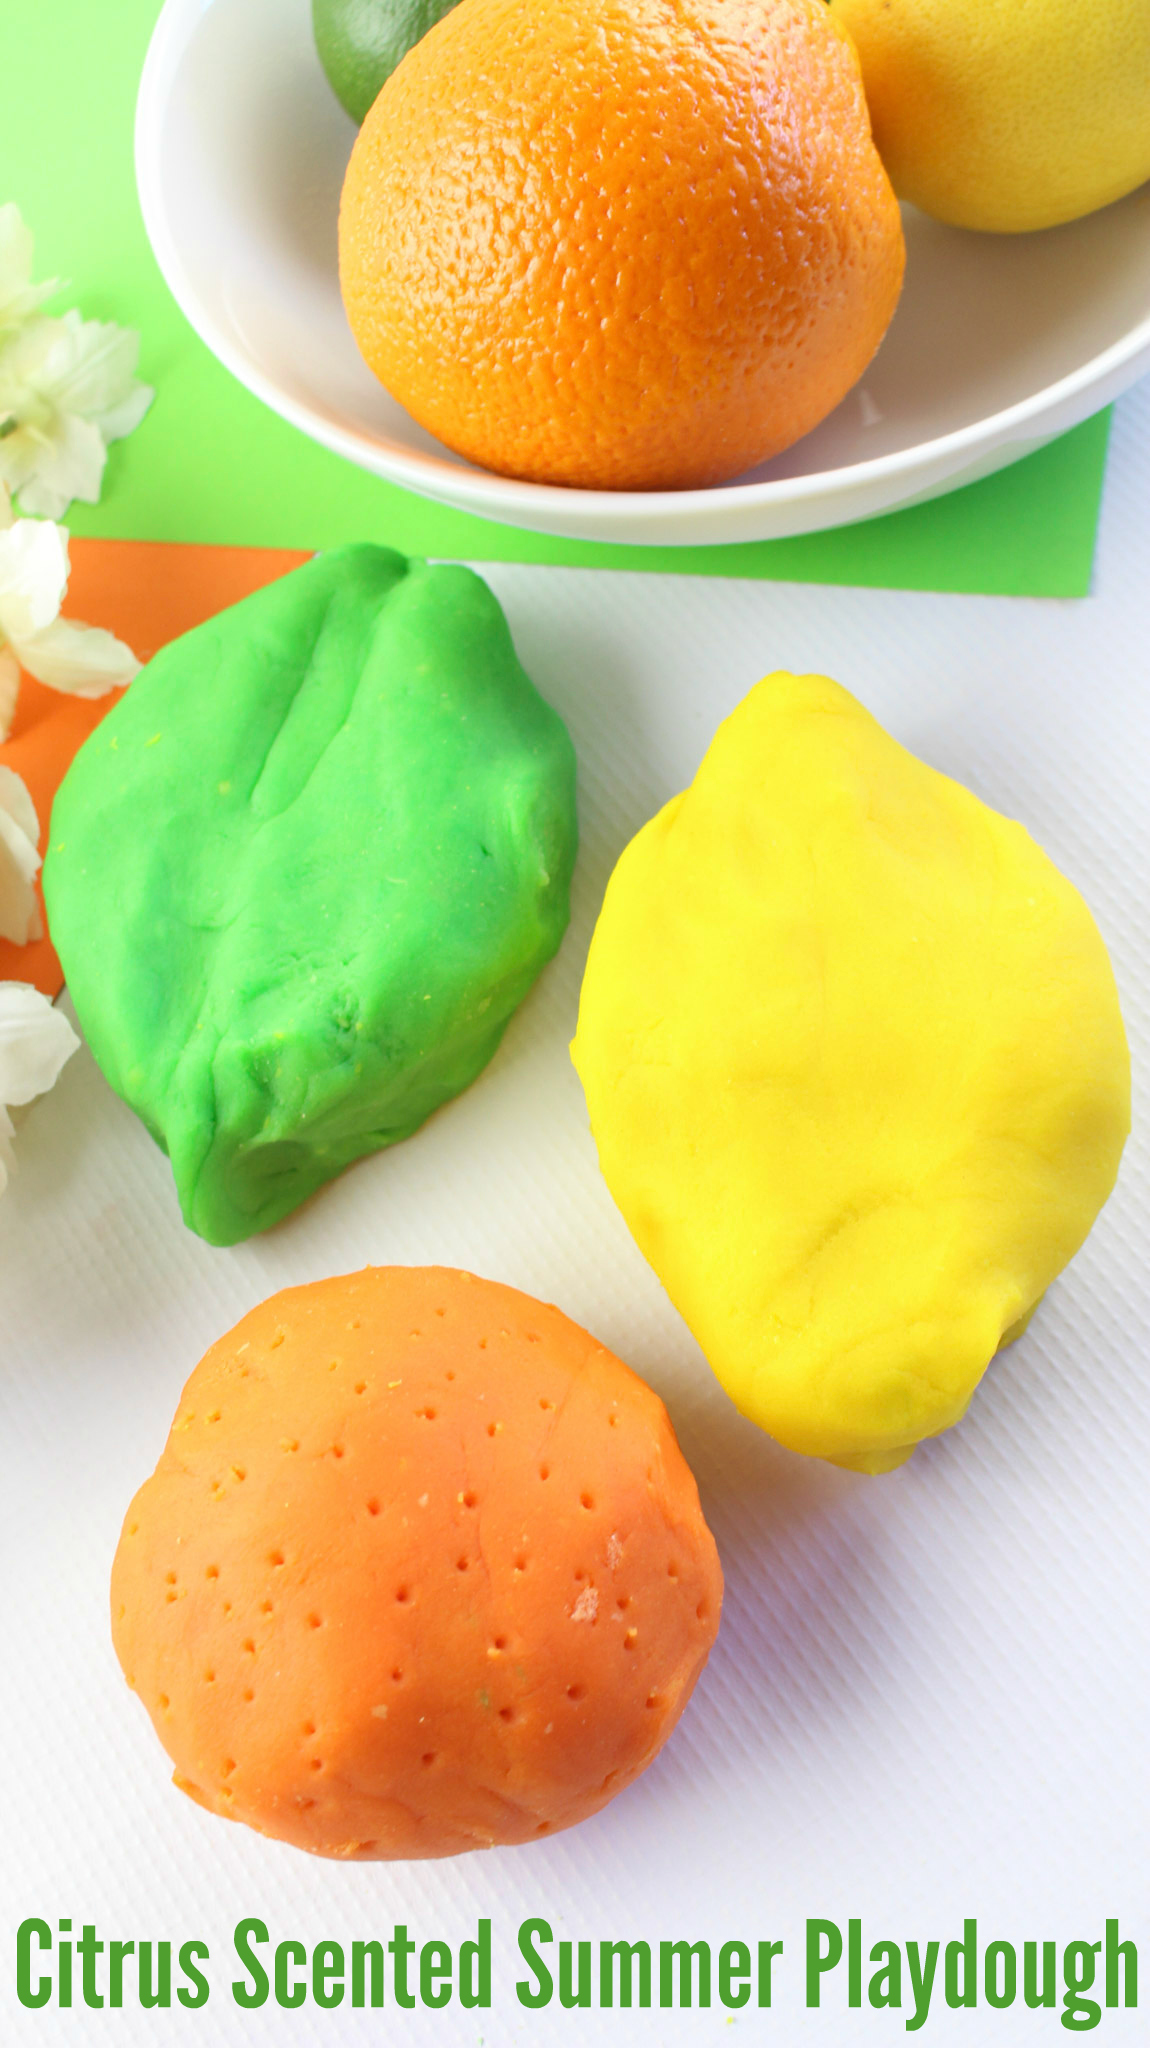 Citrus Scented Summer Playdough - I  love making playdough that smells and looks like the season we're in. For Summer, citrus is the way to go! This Citrus Scented Summer Playdough recipe will make the whole house smell cheery & bright and your kids will have a blast playing with it!